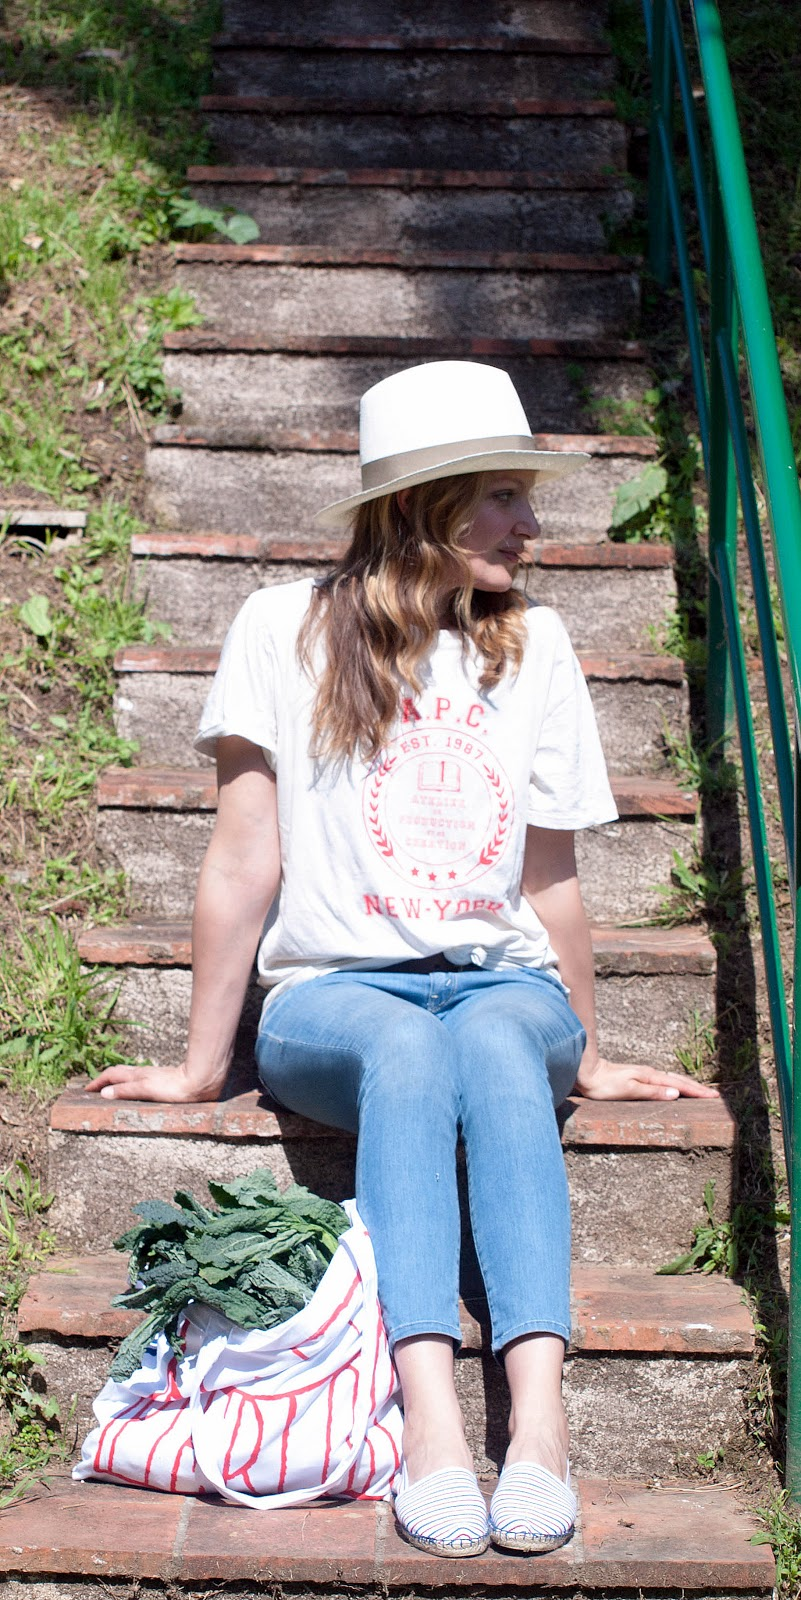 Claudie Pierlot, Claudie Pierlot espadrilles, A.p.C. logo t-shirt, Pachacuti hat, Mother the looker